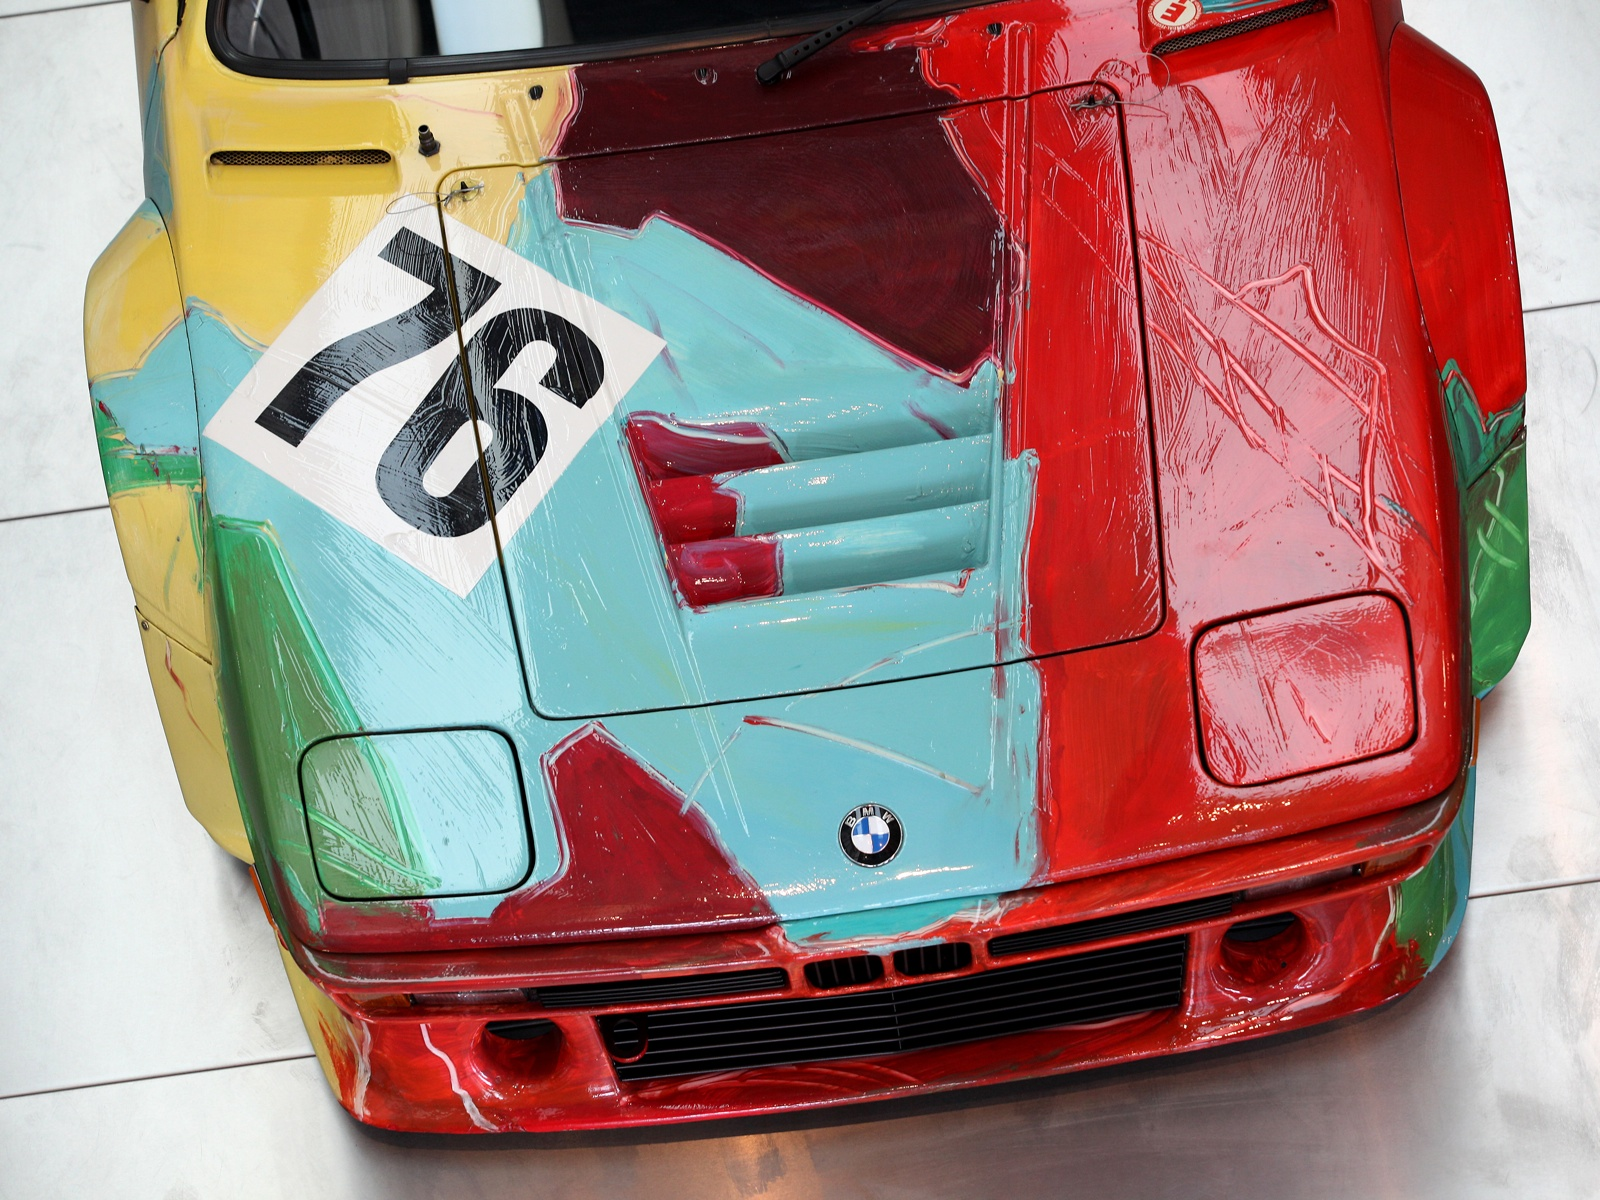 BMW M1 art car